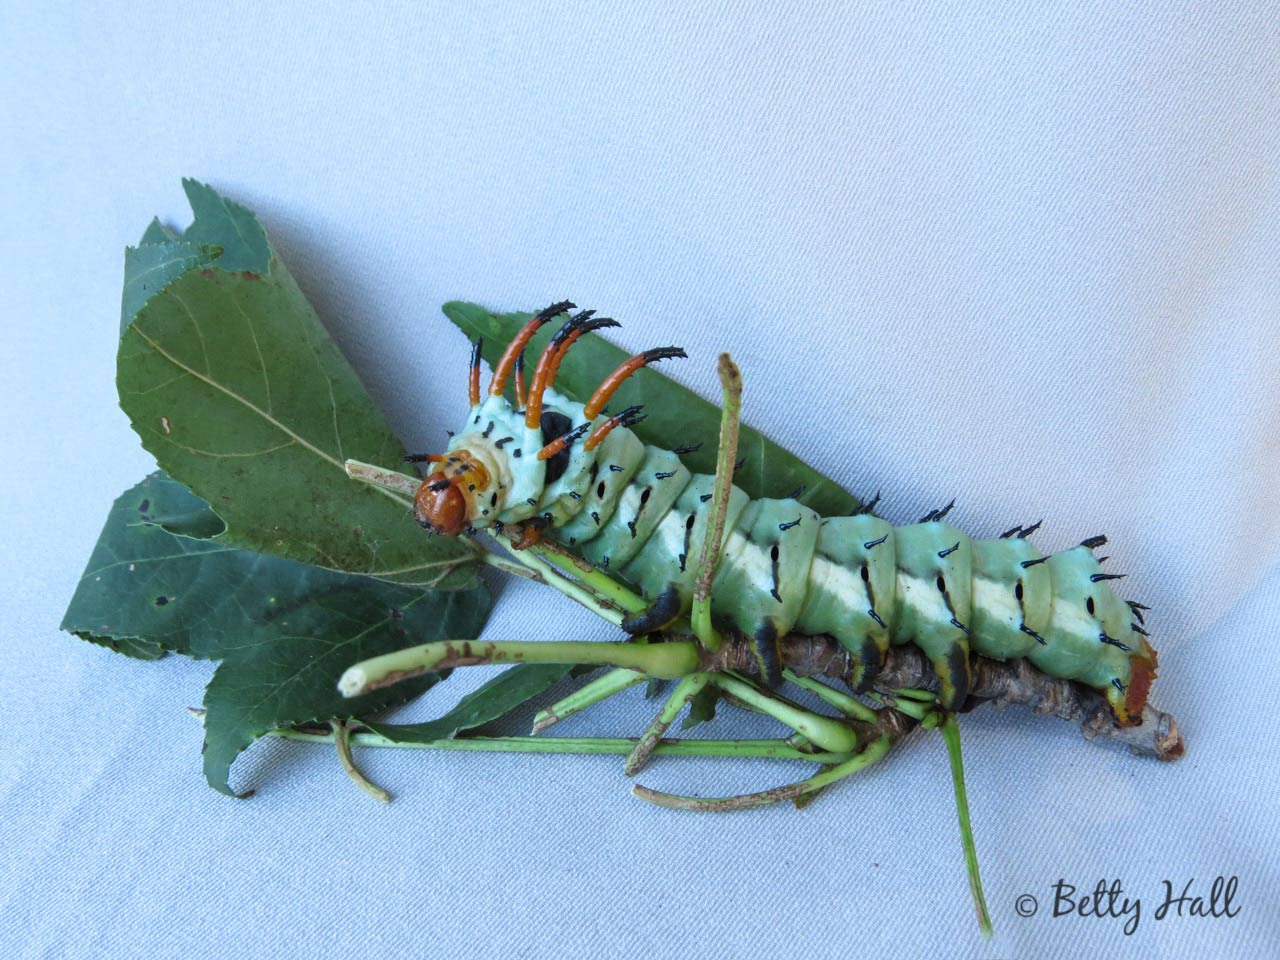 Hickory horned devil caterpillar - turquoise phase